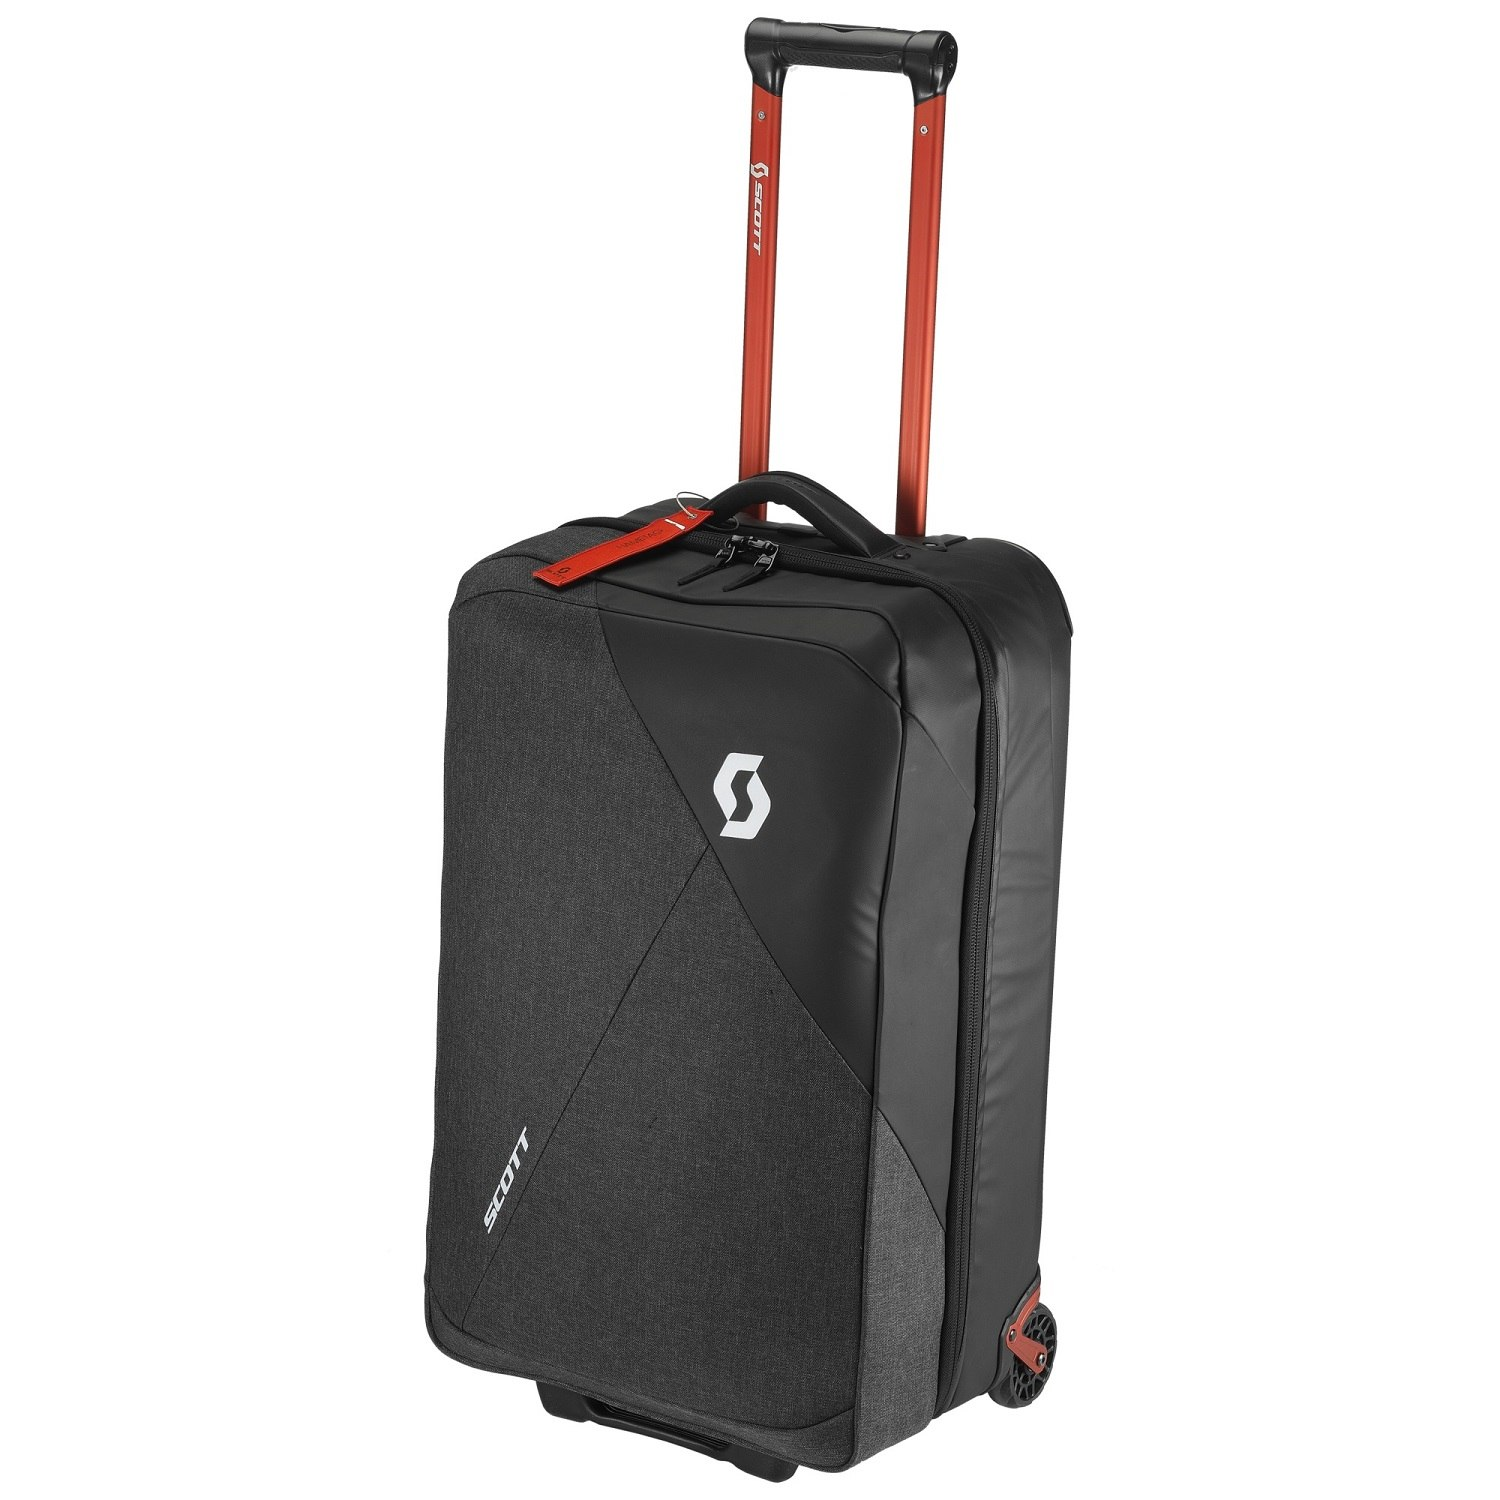 Picture of SCOTT Travel Softcase 70 Luggage - dark grey/red clay